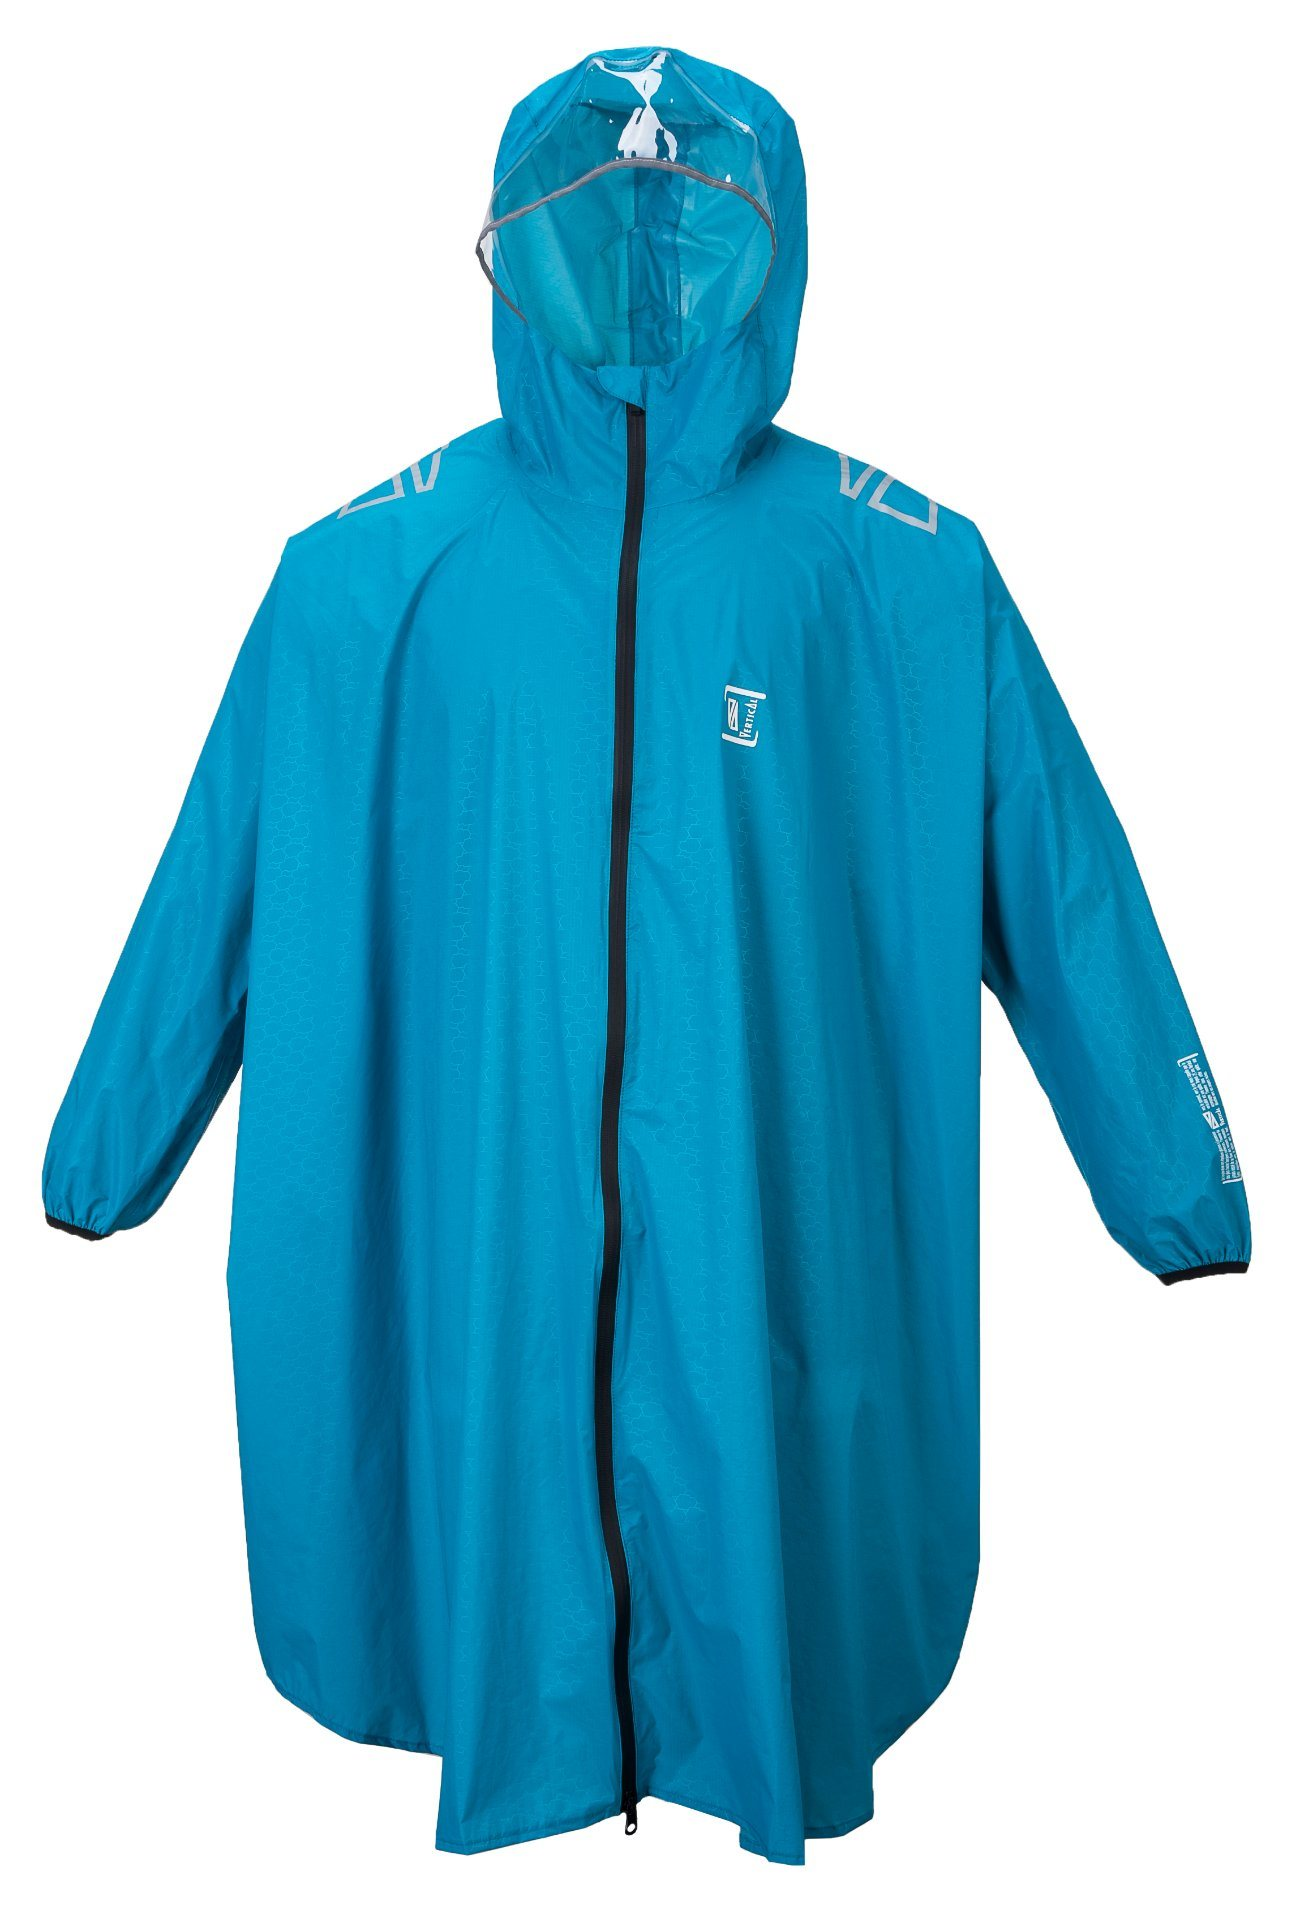 210t/PU Hight Level Raincoat From Factory